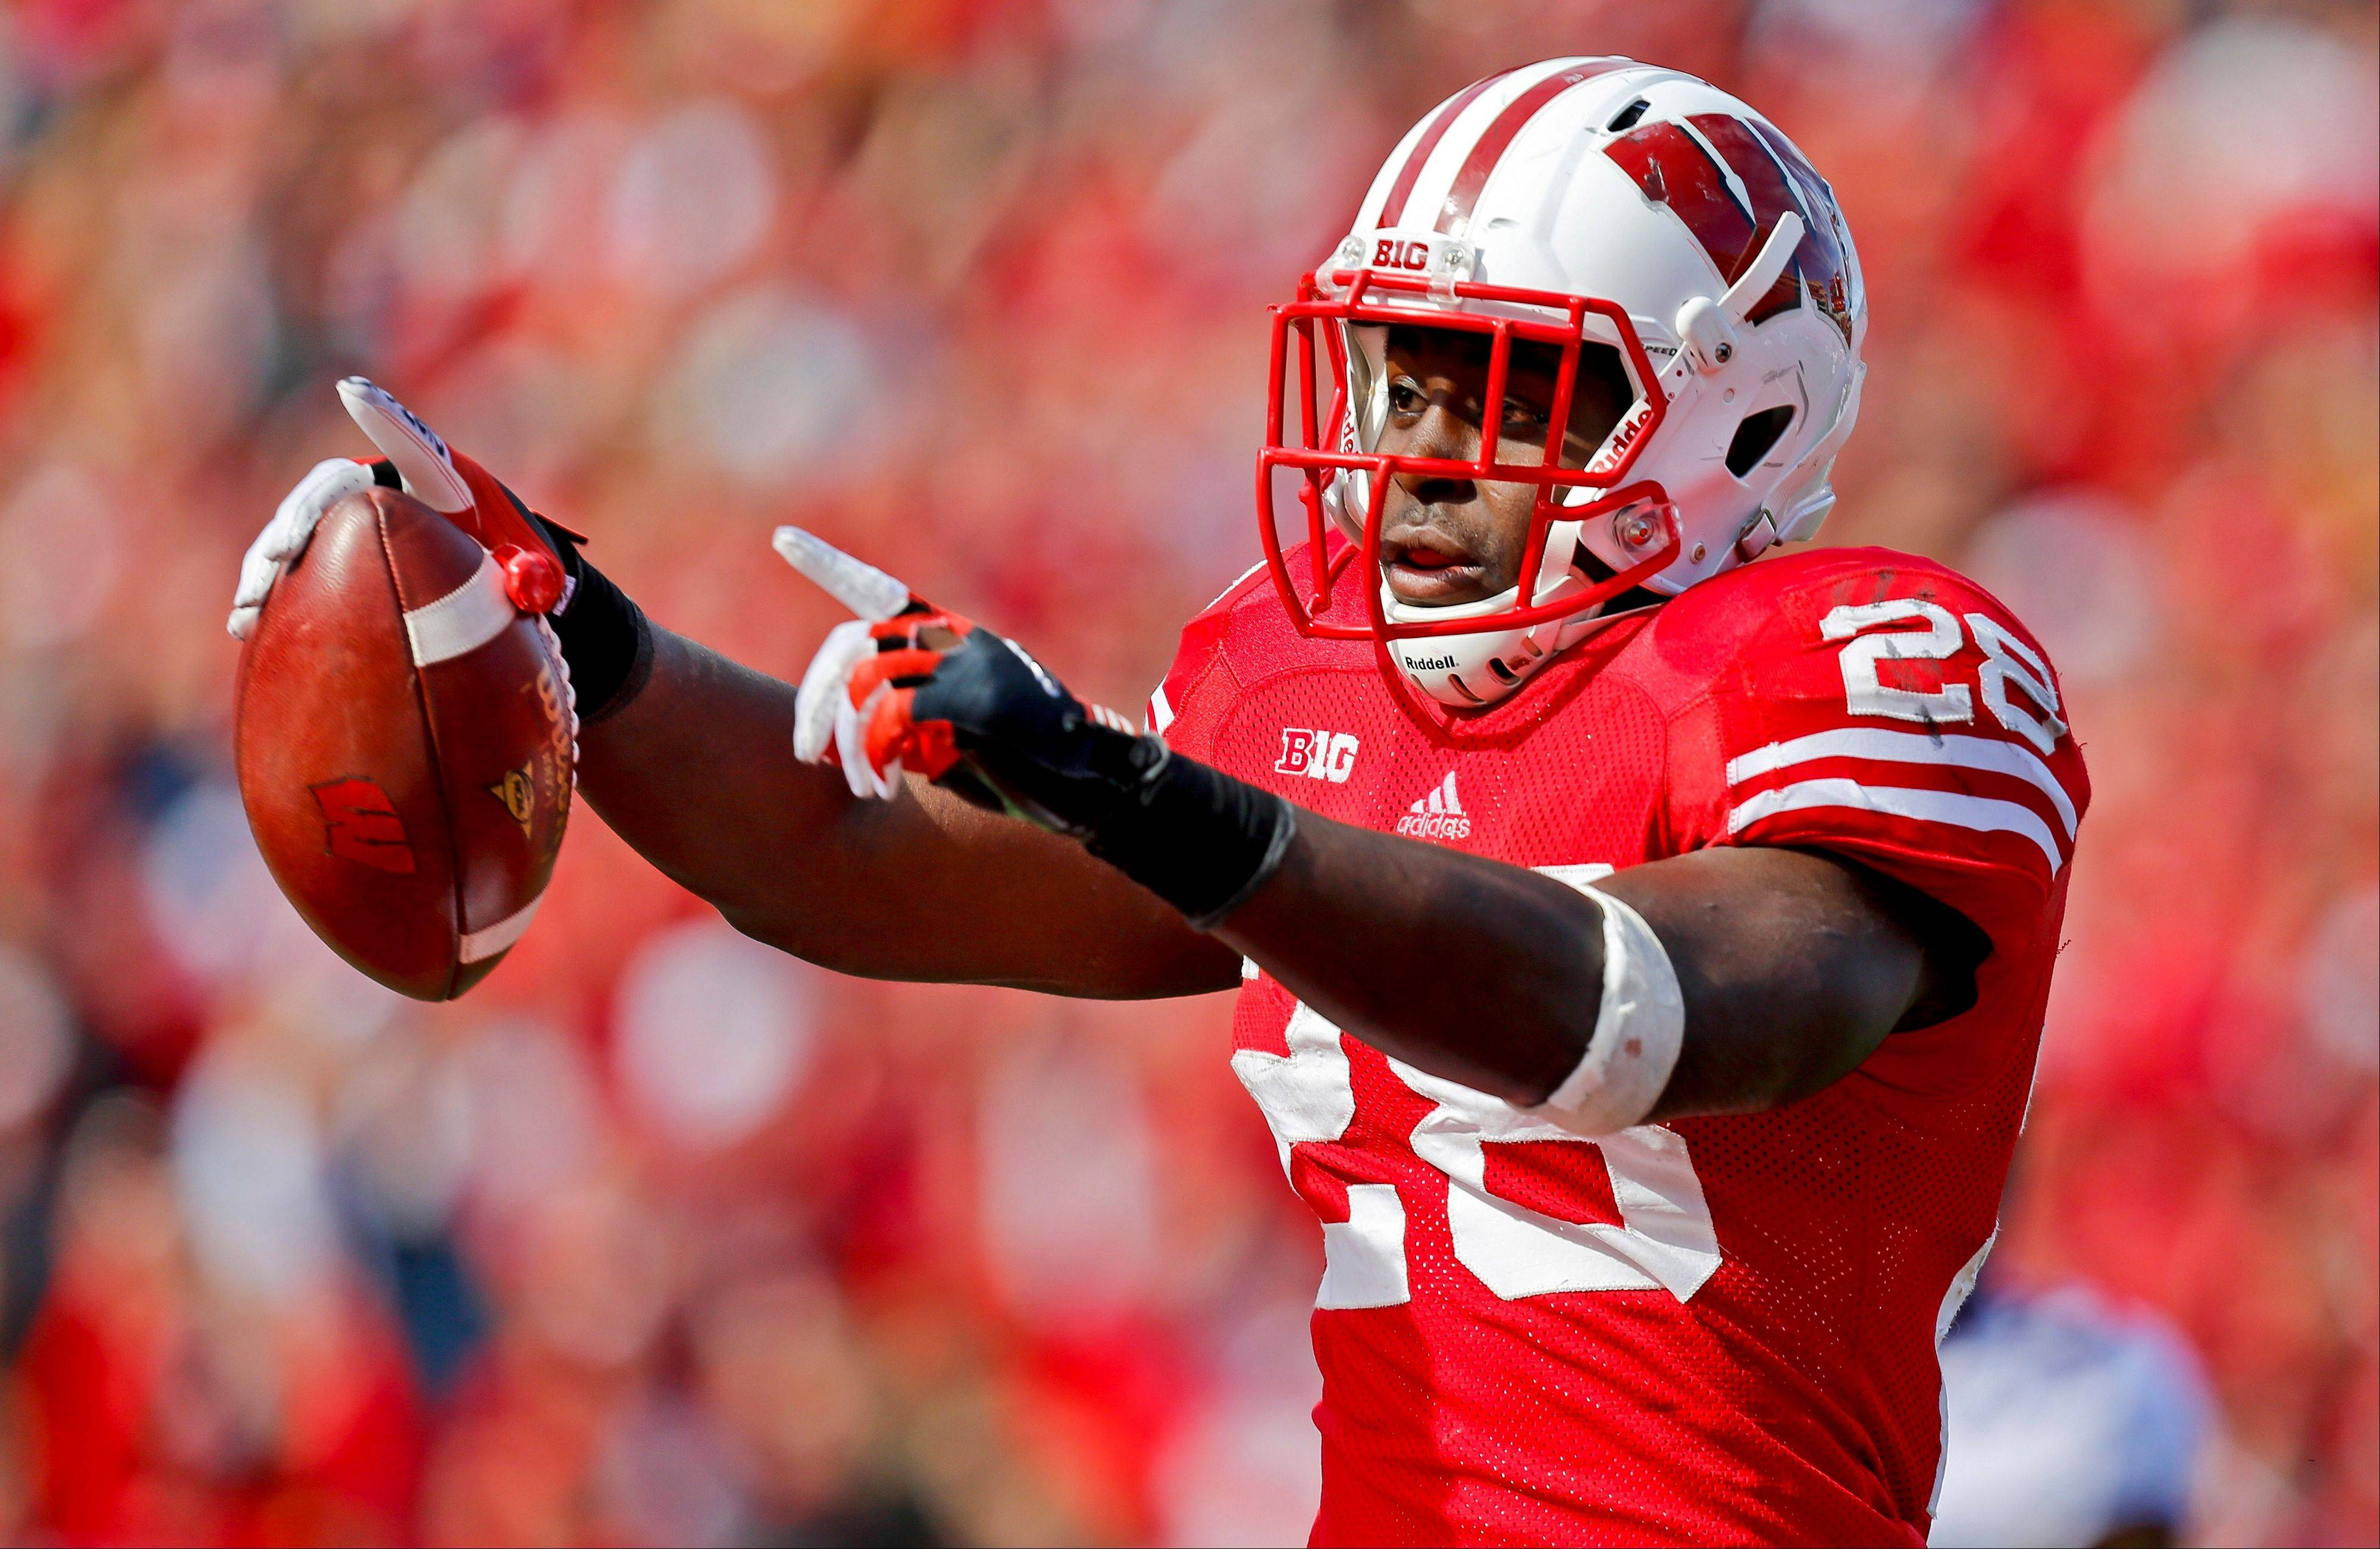 Wisconsin running back Montee Ball celebrates a touchdown against Minnesota. Ball was selected to the first-team on The Associated Press All-America football team.